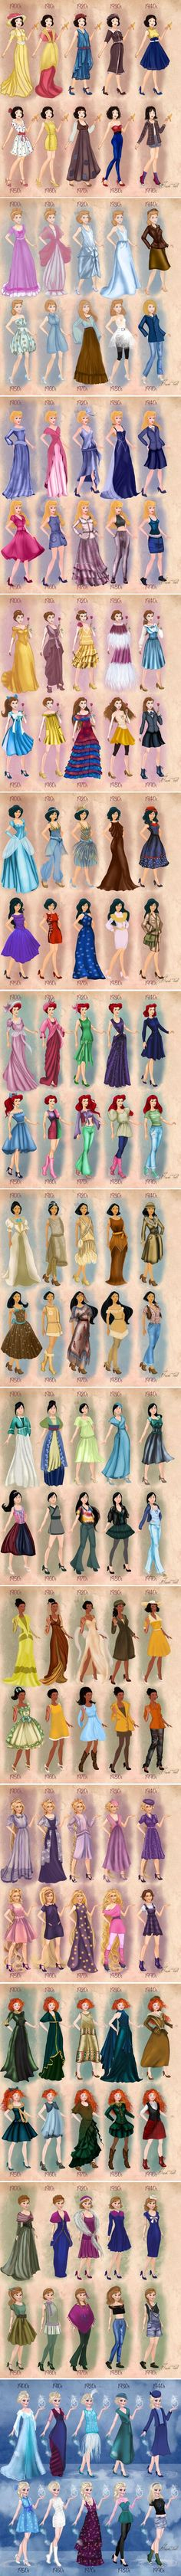 disney princesses through the ages